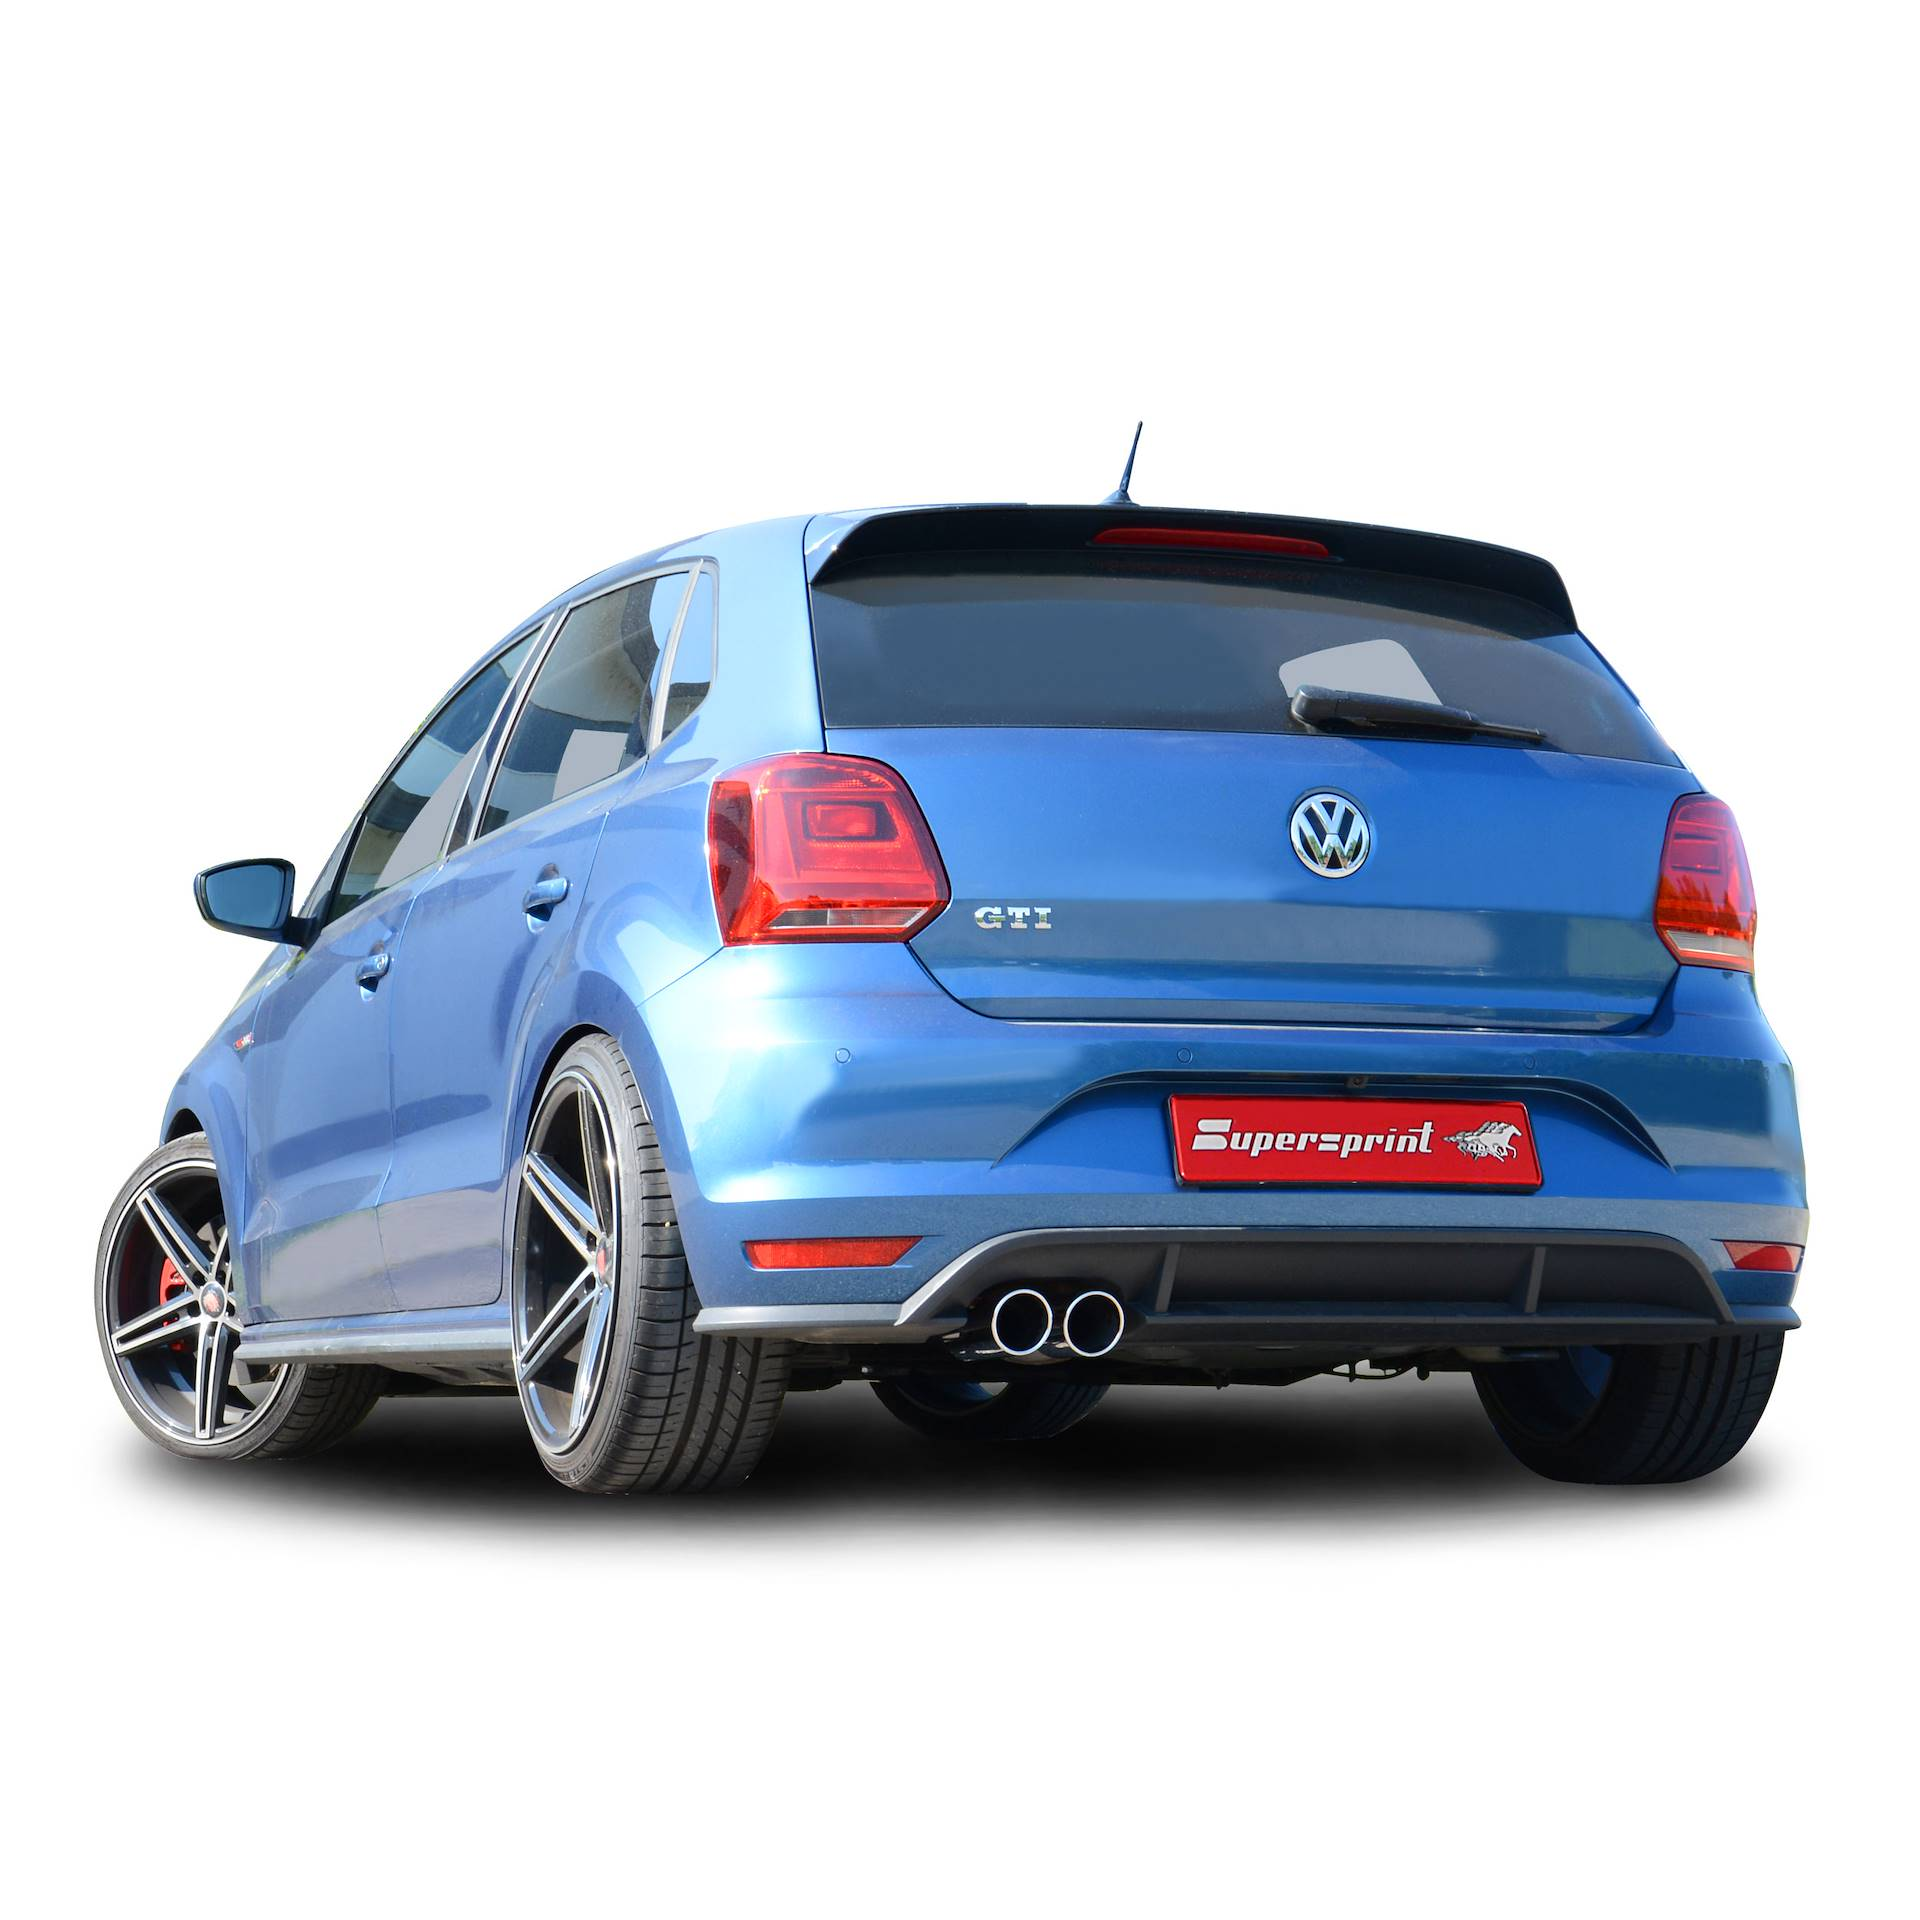 performance sport exhaust for polo gti 2015 1 8 192hp vw polo 6c gti 1 8 tsi 3d 5d 192 hp. Black Bedroom Furniture Sets. Home Design Ideas